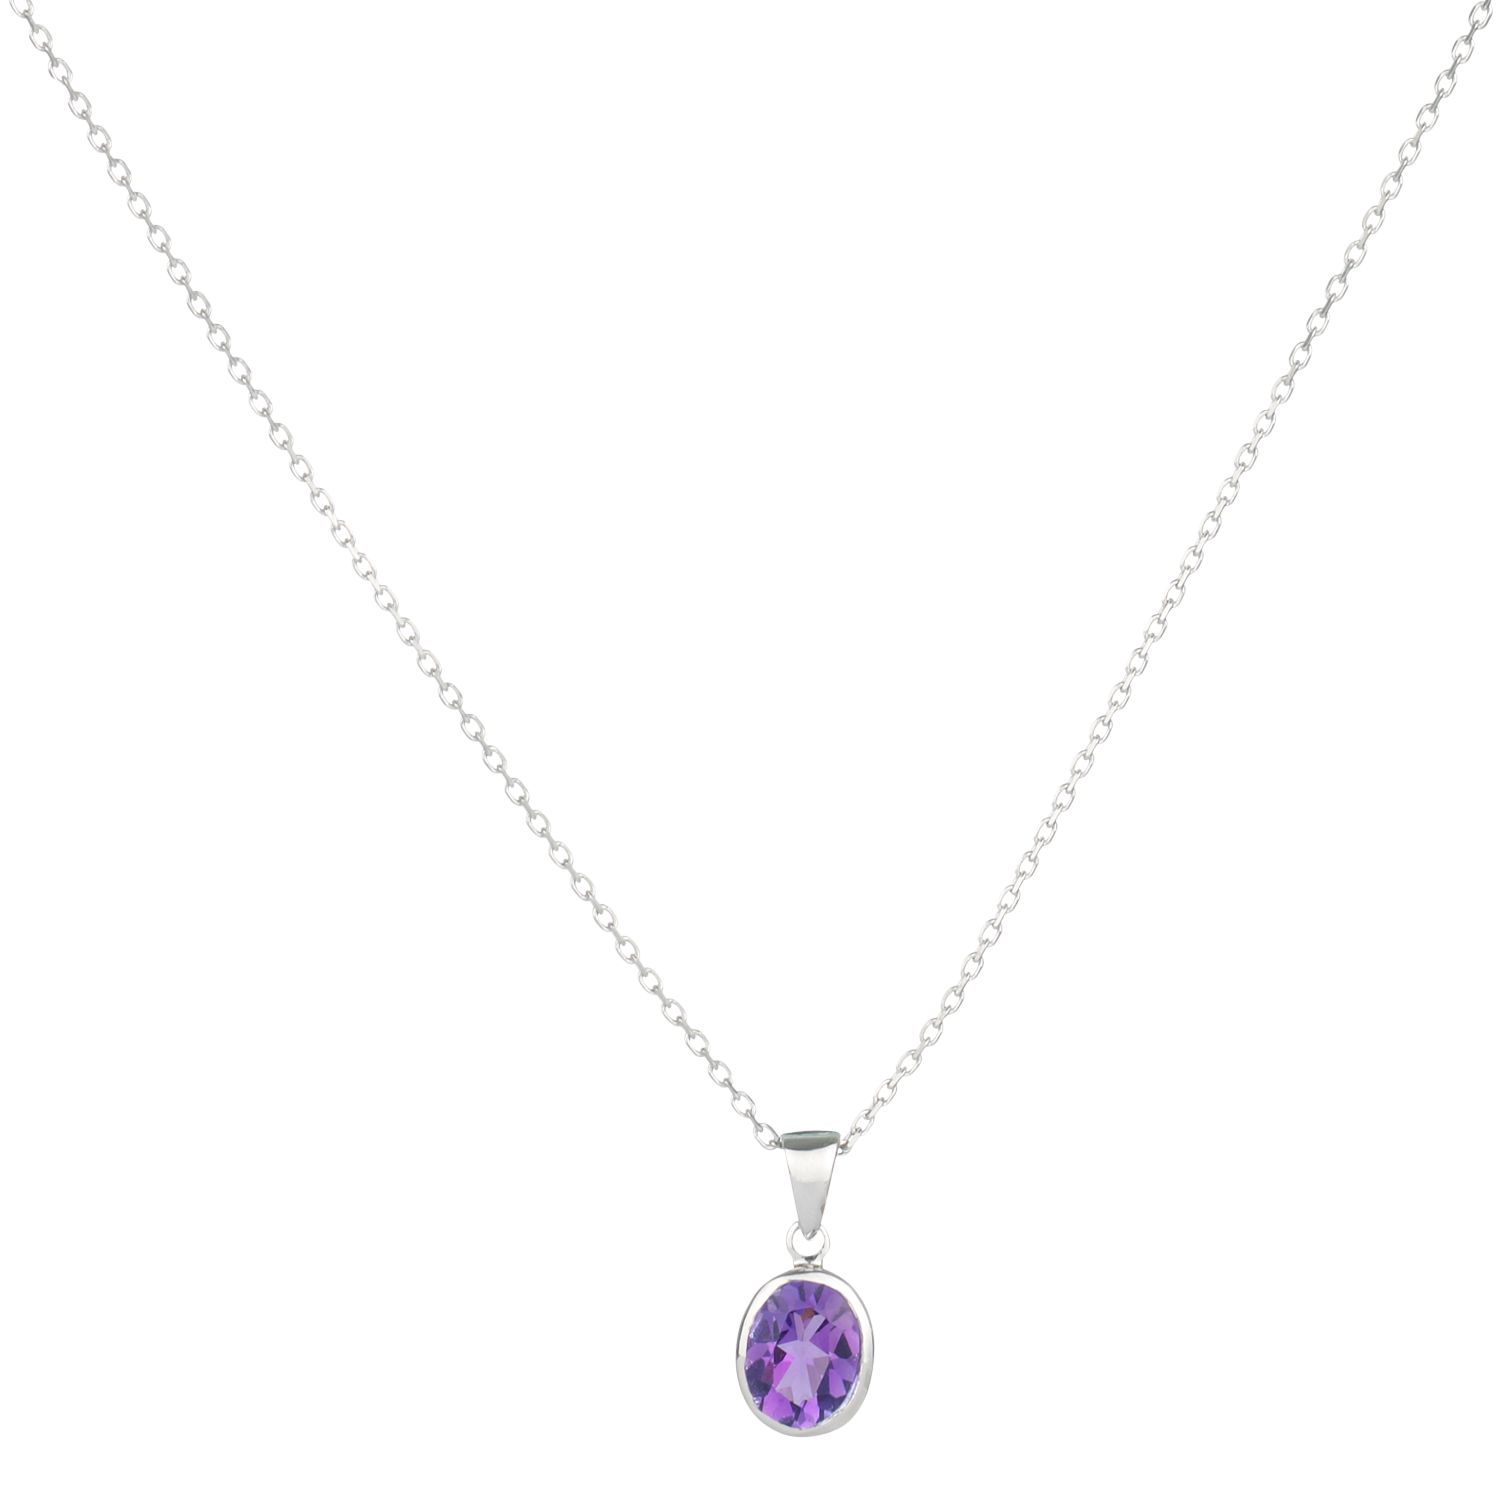 9ct White Gold Amethyst Rubover Oval Pendant Necklace